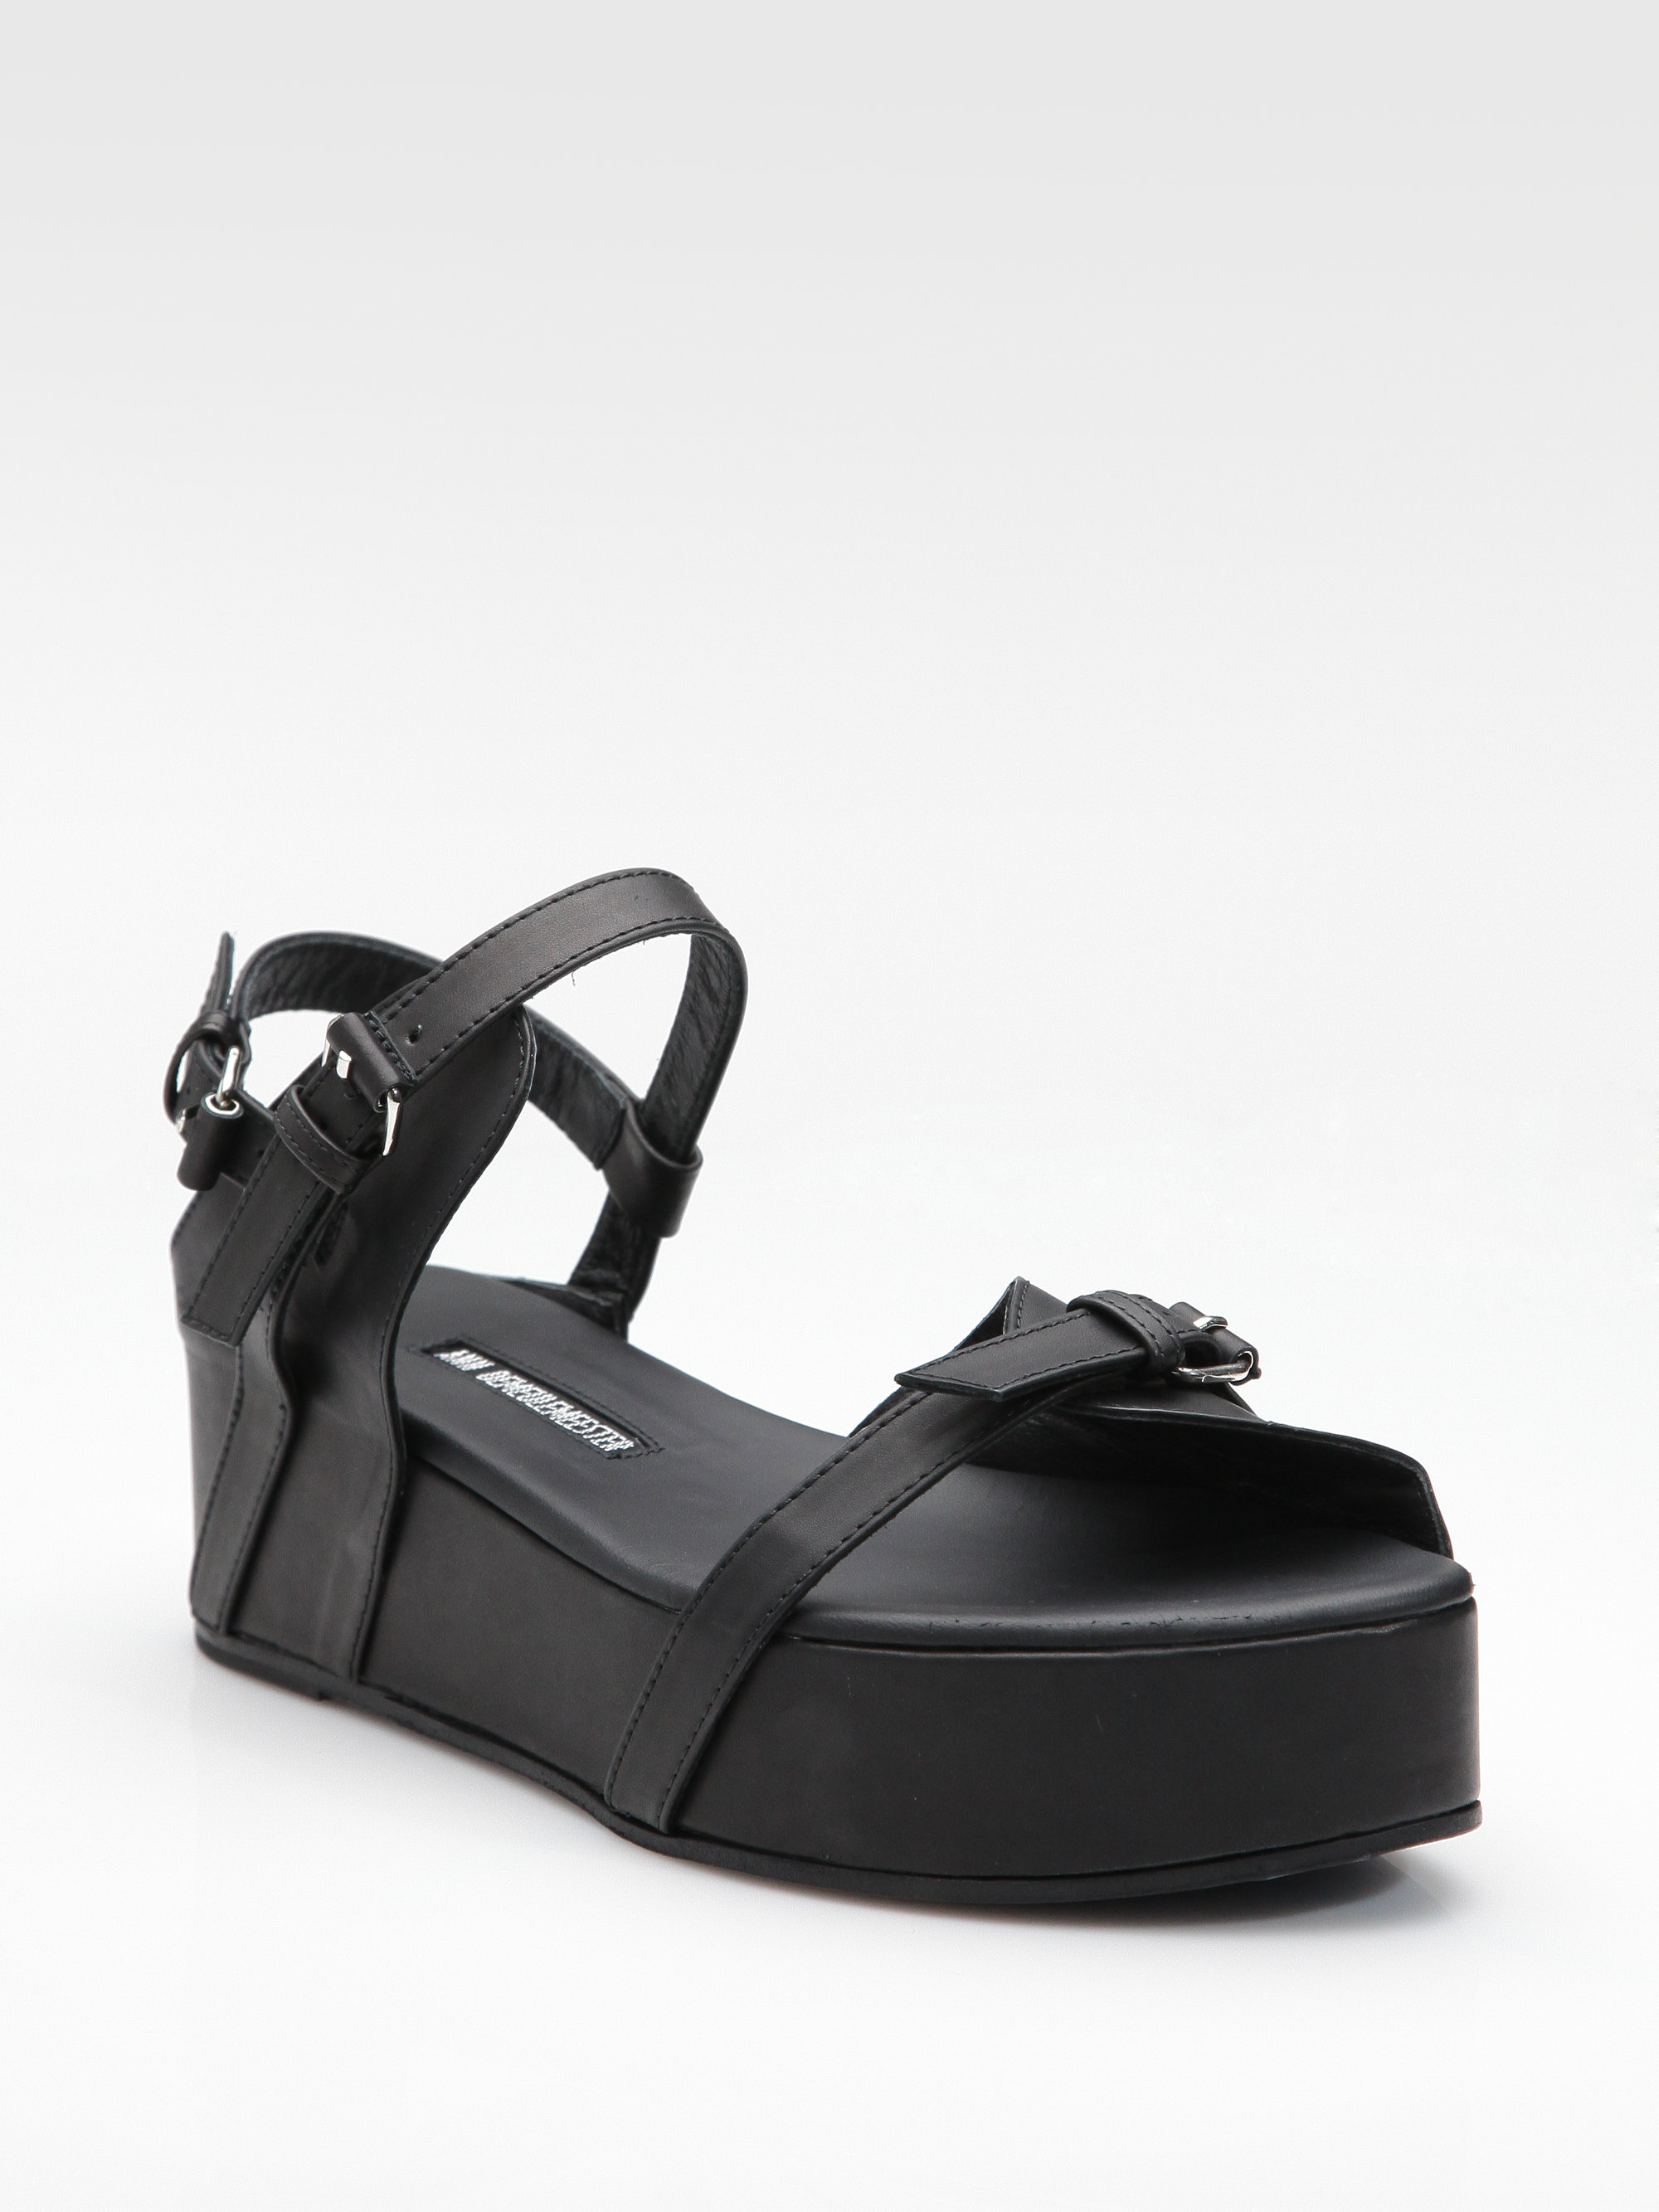 Ann Black Demeulemeester Sandals Leather Bfy67g 2h9iwed Lyst In Platform n0PXkw8O